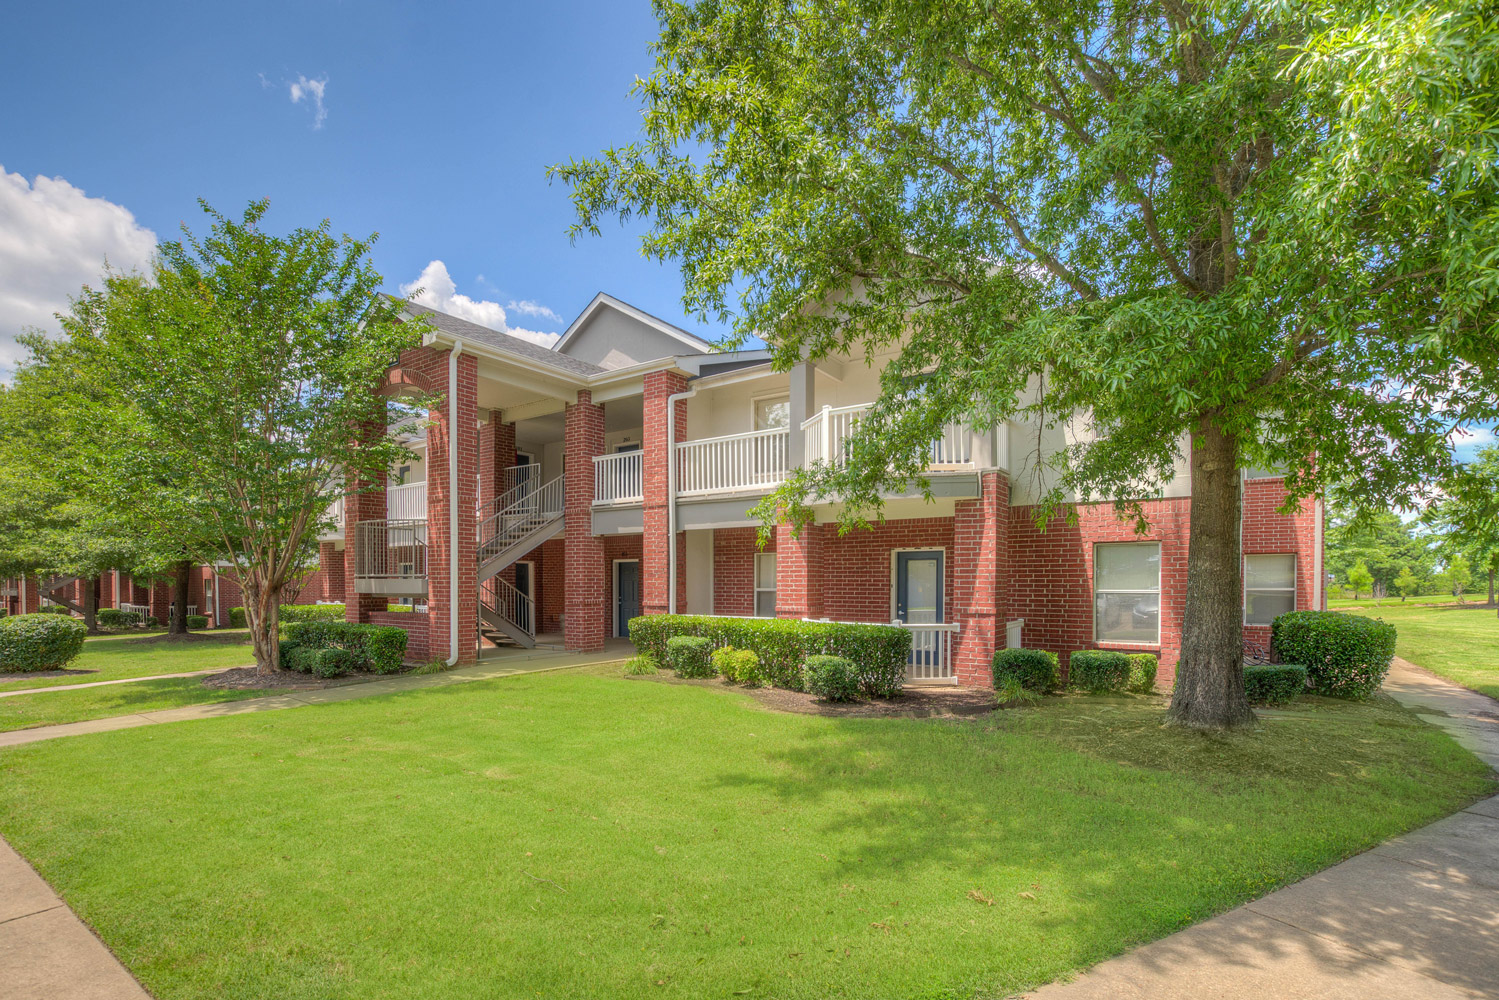 Well-Landscaped and Kept Grounds at The Park at Forest Hill Apartments in Memphis, Tennessee